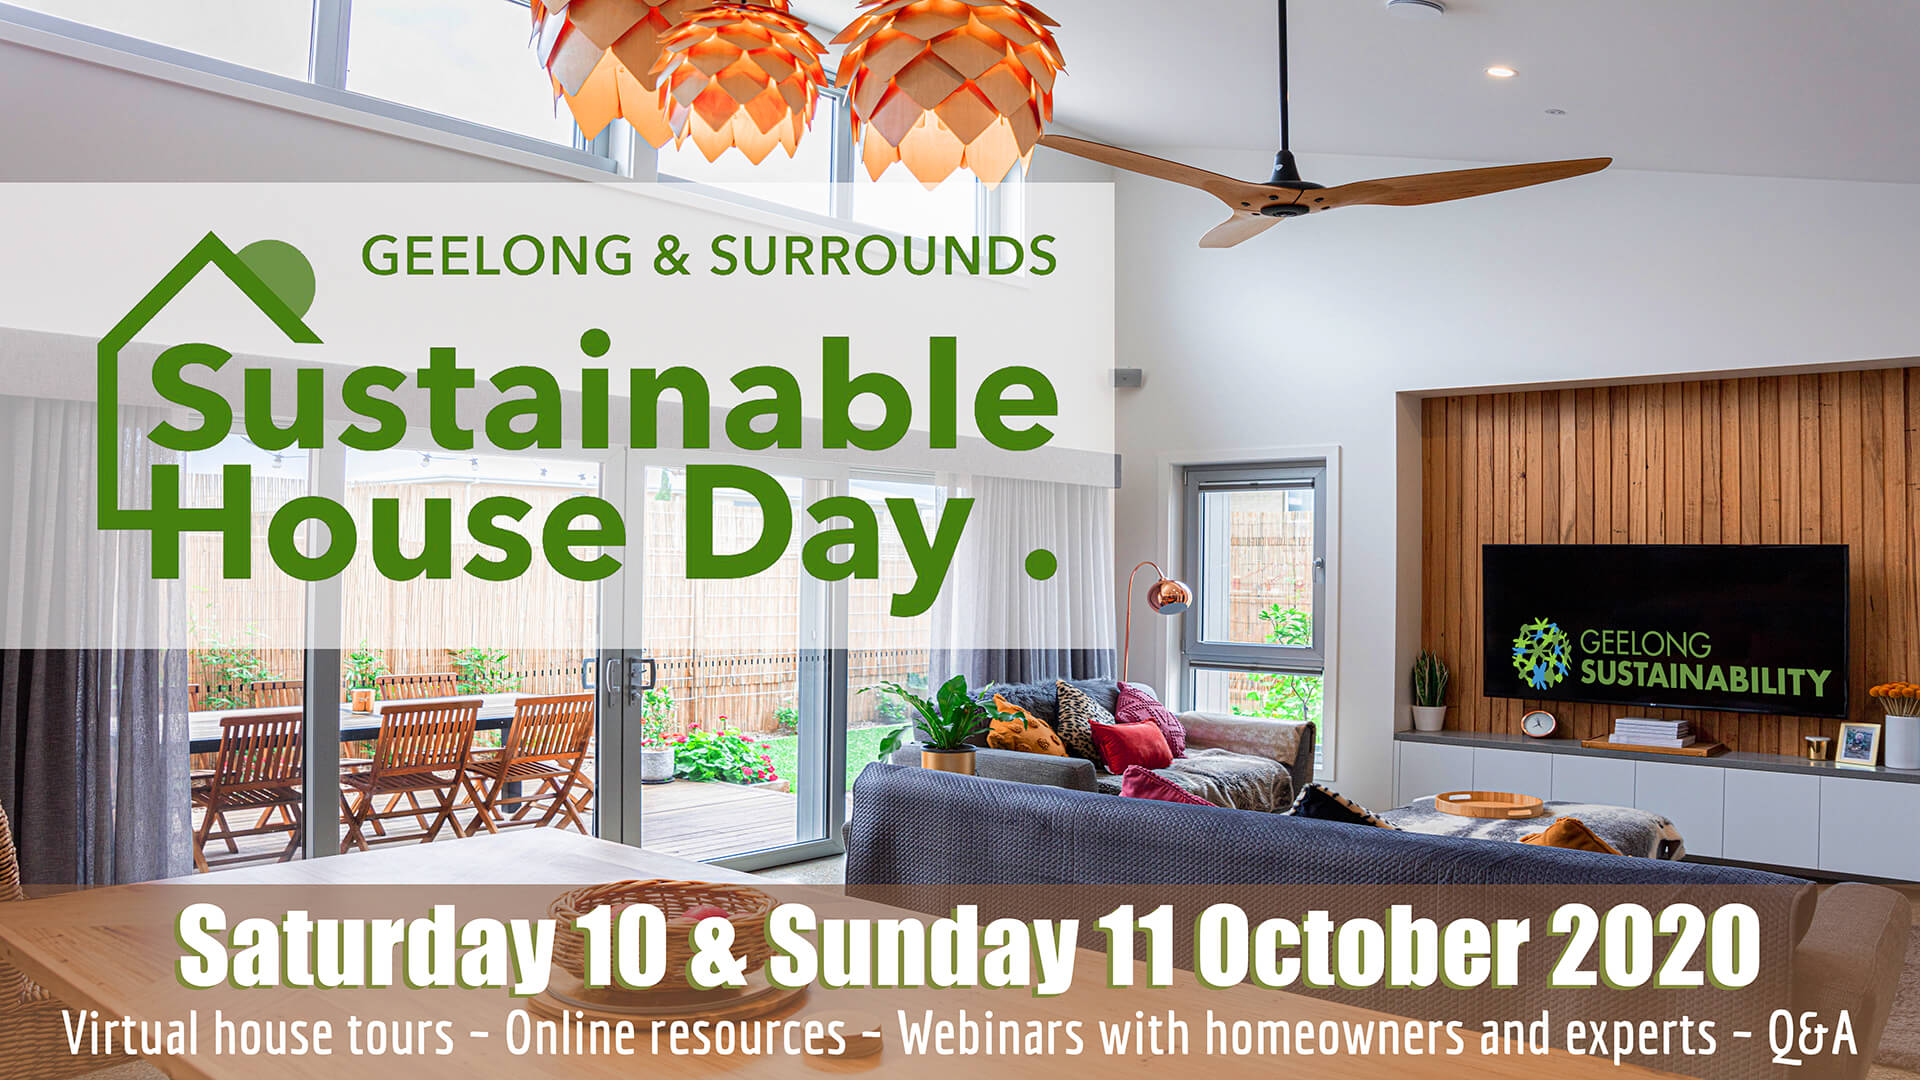 Geelong and Surrounds Sustainable House Day 2020